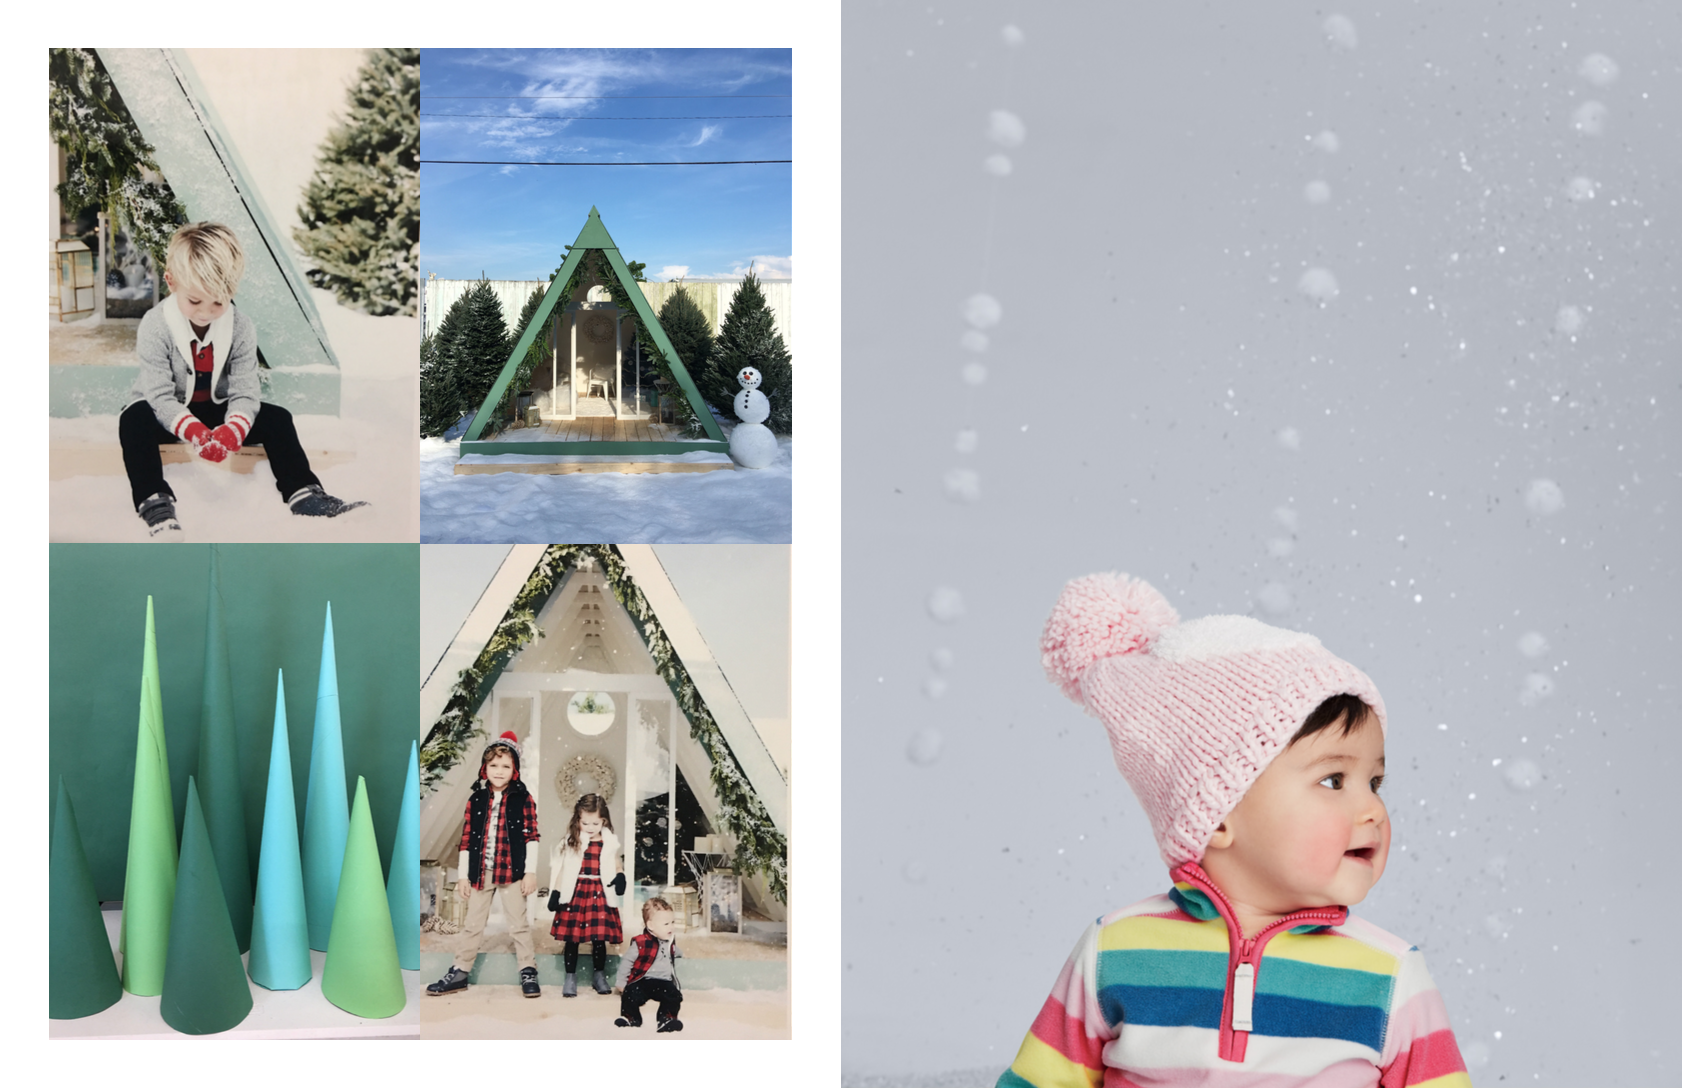 Left: Photography: Tim Marsella, Marcus Hay, Right: Tim Marsella, Set and Prop Styling: Marcus Hay for SMH, Inc